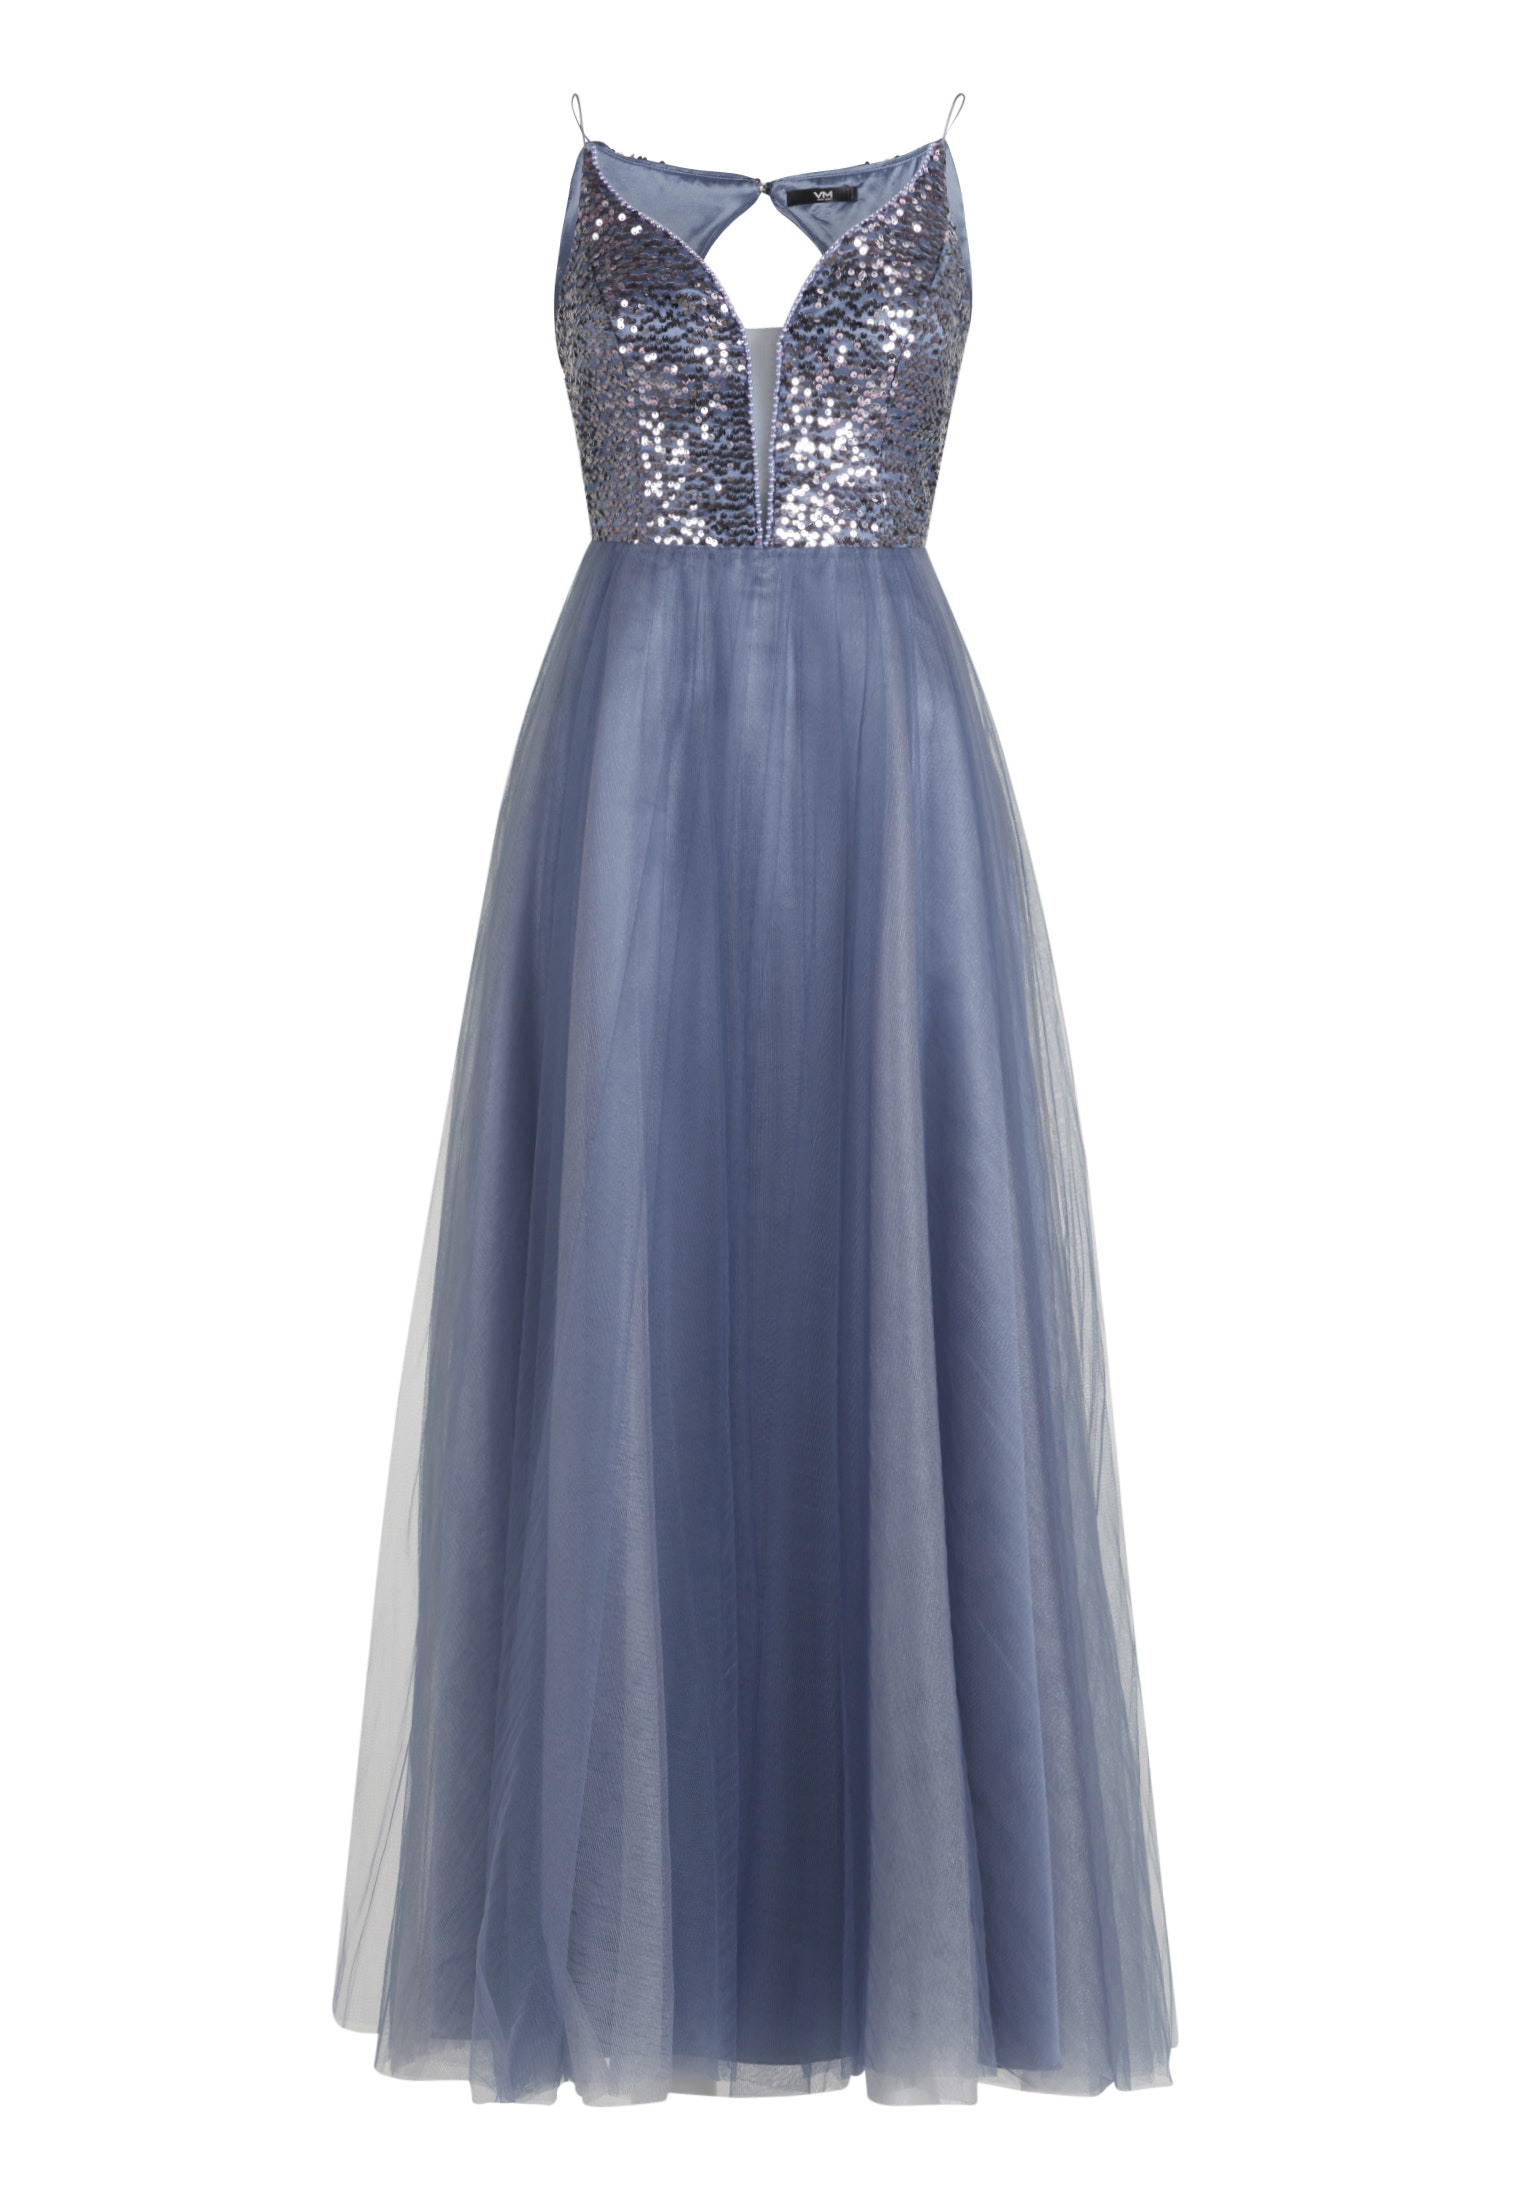 Formal Schön Abendkleid Ingolstadt Boutique - Abendkleid